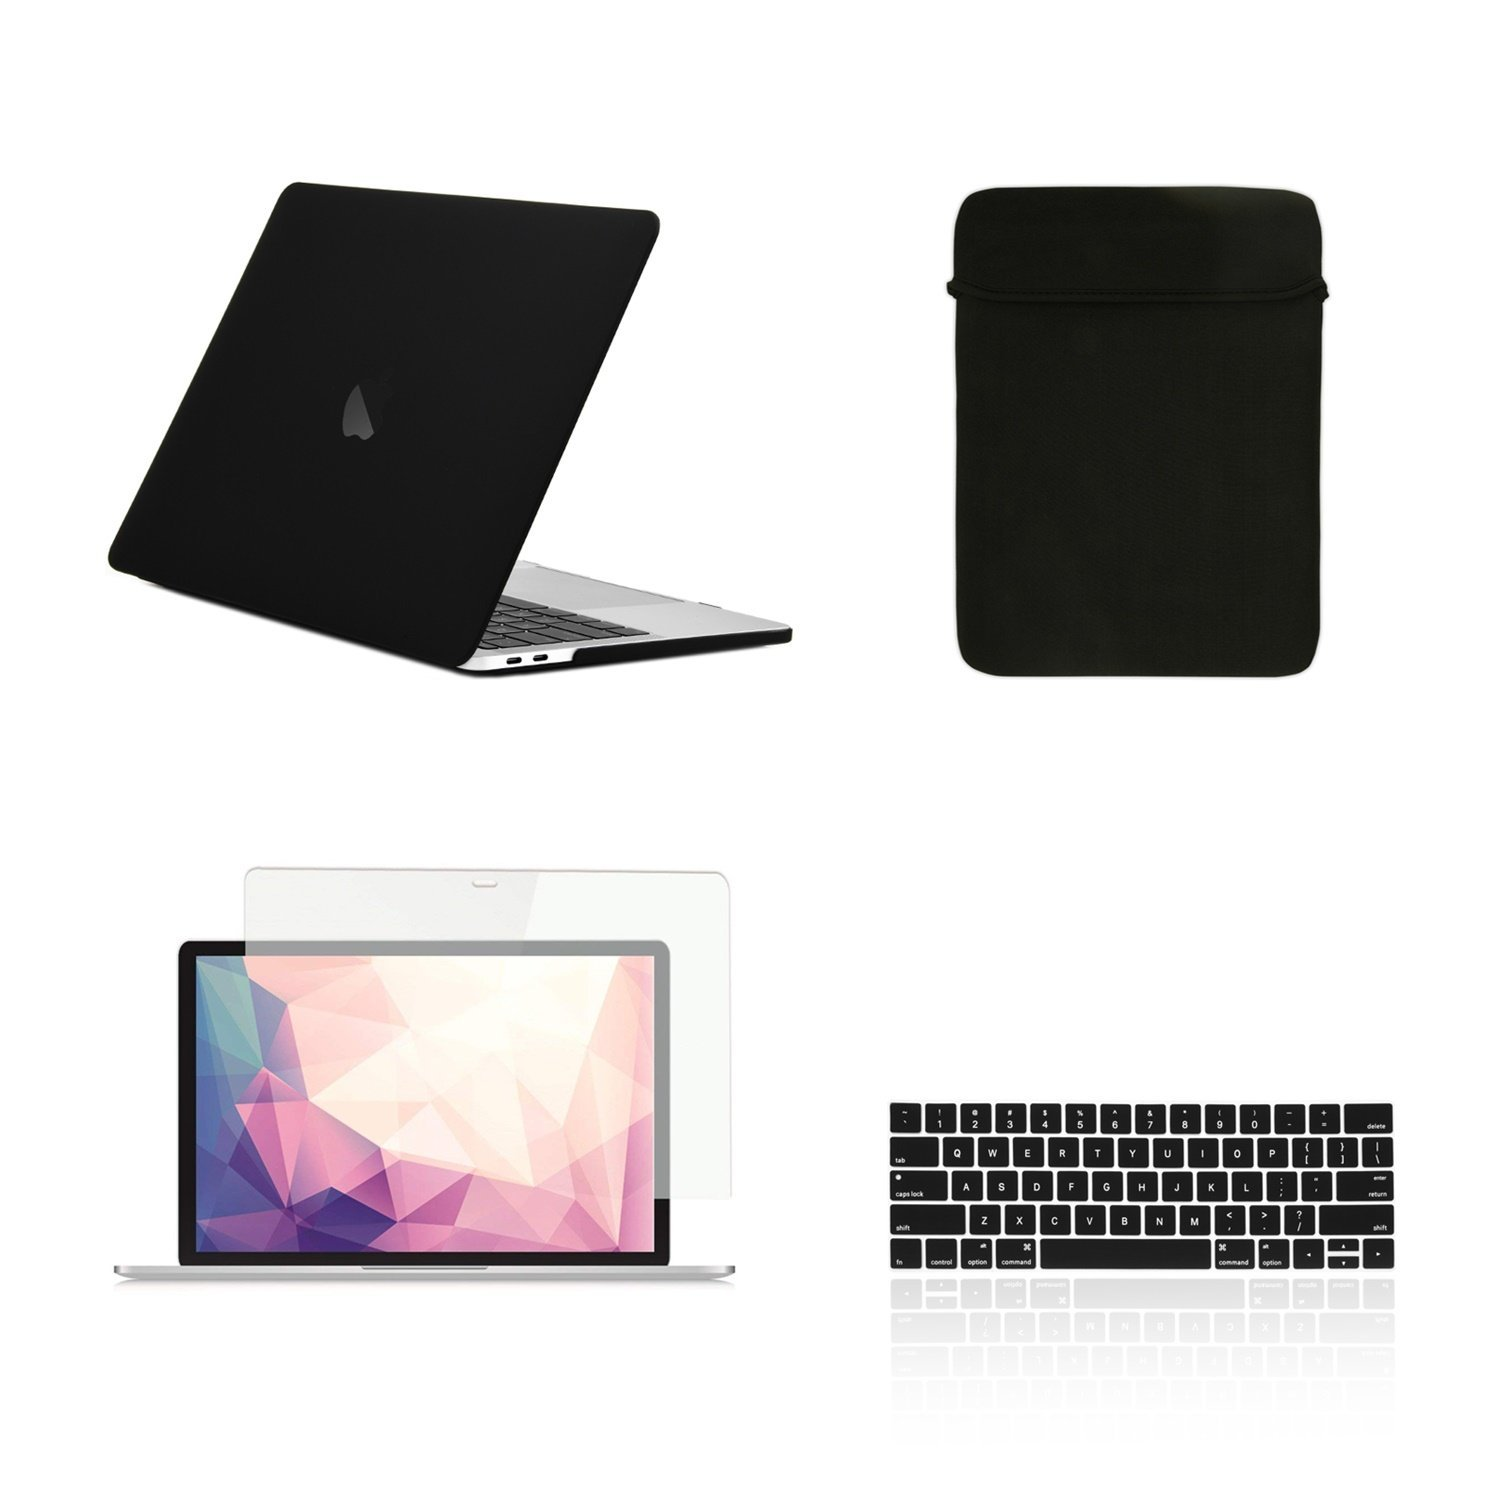 TOP CASE - 4 in 1 Matte Hard Case,Keyboard Cover,Sleeve Bag,Screen Protector Compatible with MacBook Pro 13-inch A1989,A1706 with Touch Bar/A1708 Without Touch Bar (Release 2017,2016,2018) - Black by TOP CASE (Image #1)